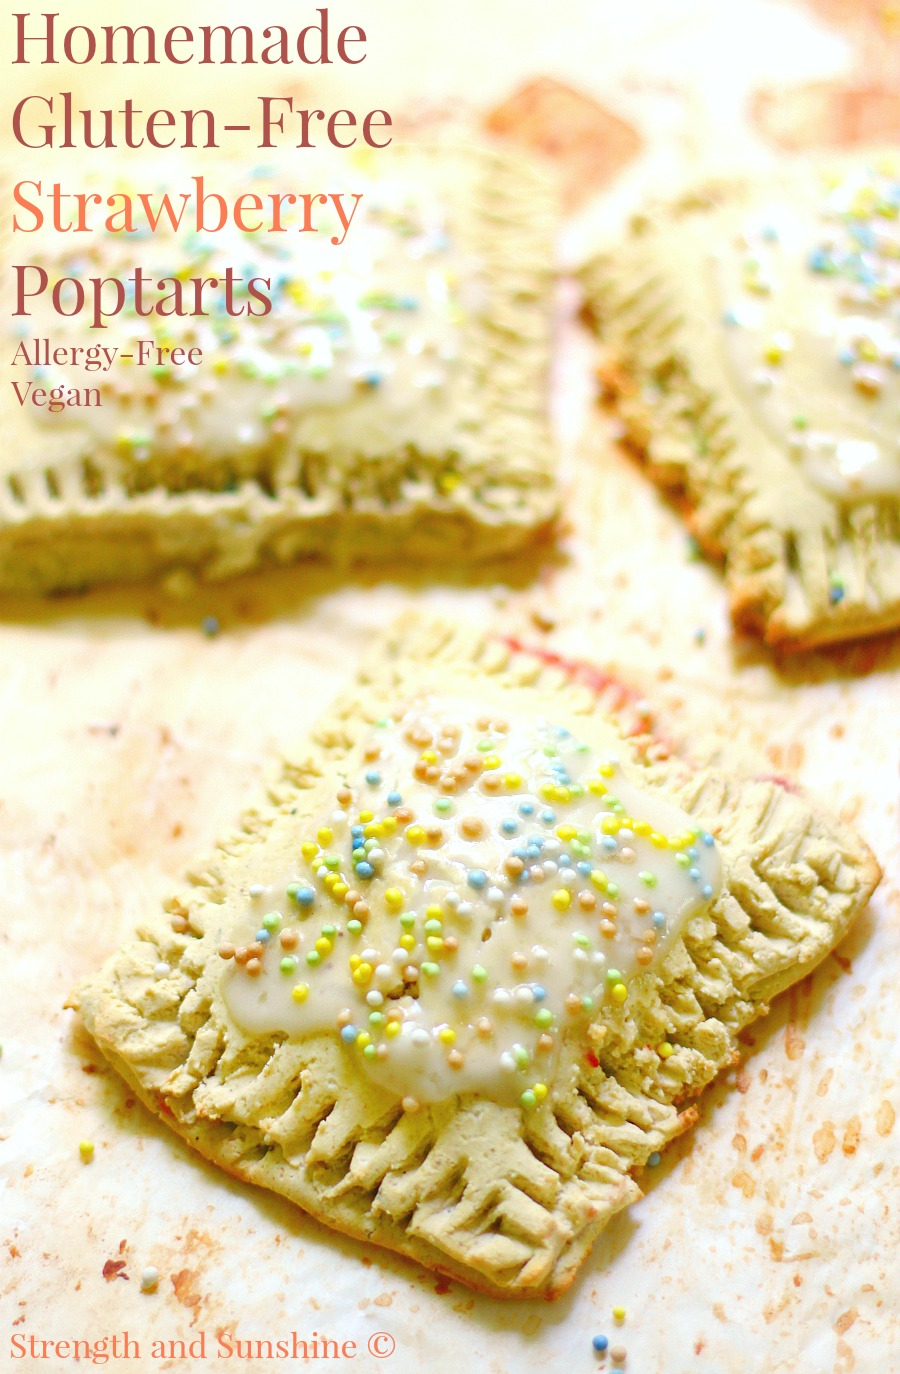 Homemade Gluten-Free Strawberry Poptarts (Allergy-Free, Vegan) | Strength and Sunshine @RebeccaGF666 Who wouldn't want a healthier but equally delicious version of this breakfast and snack time classic? Homemade Gluten-Free Strawberry Poptarts! Allergy-free and vegan without the processed sugars and fats! A recipe that's fun to make and of course, EAT!